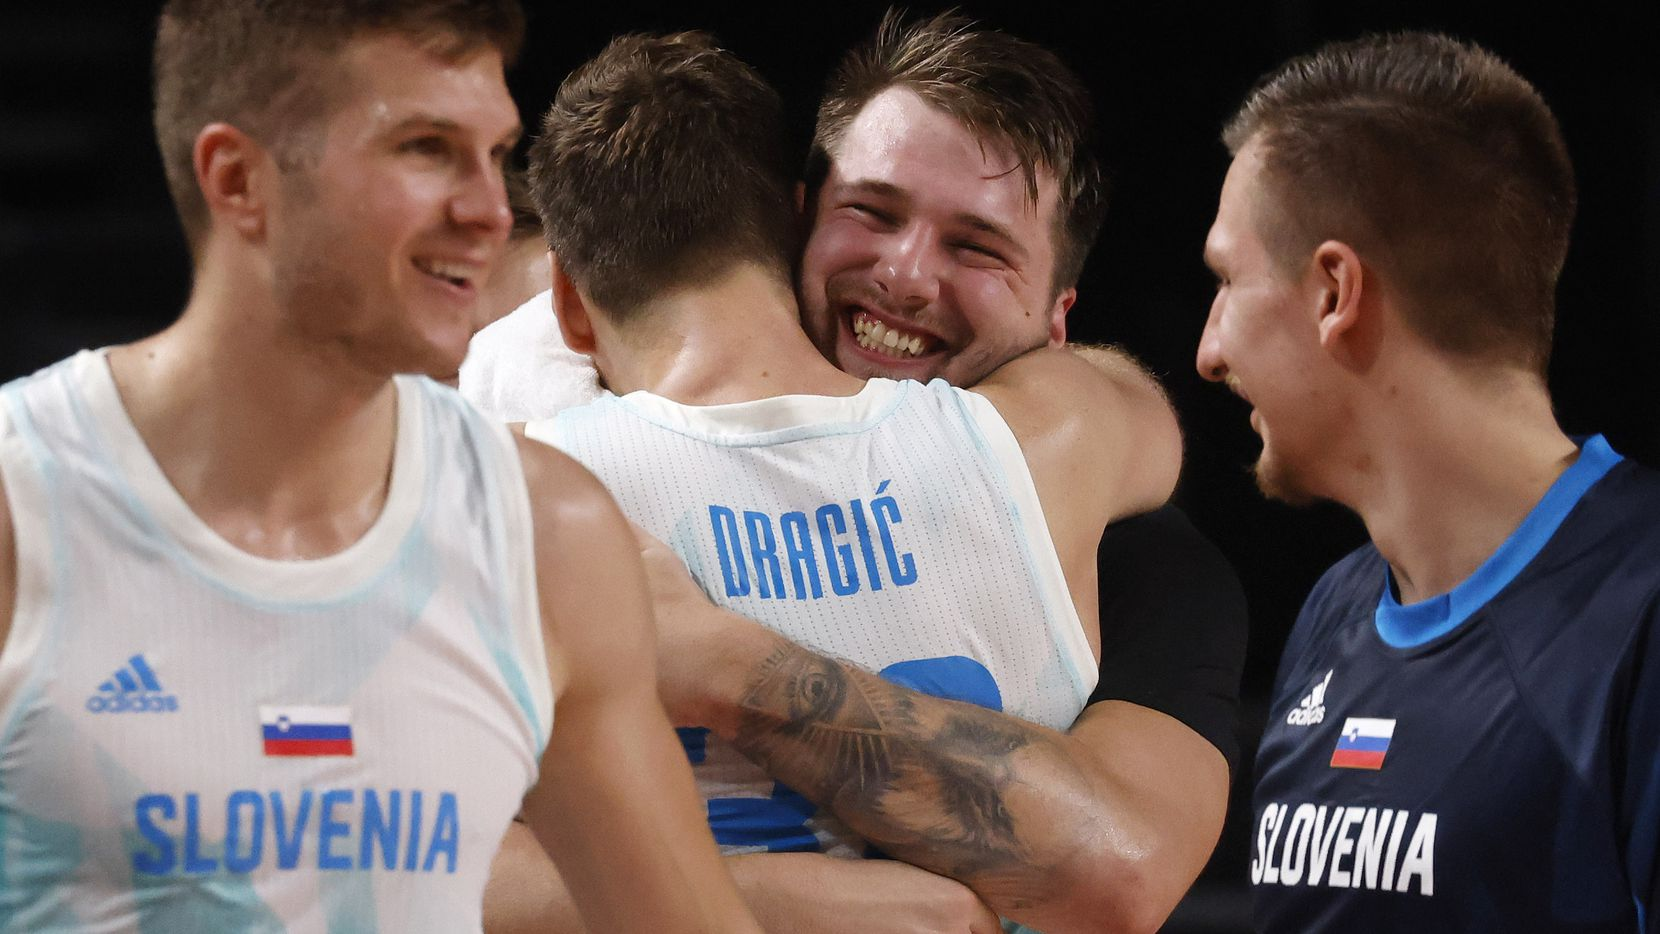 Slovenia's Luka Doncic (77) hugs Zoran Dragic (30) after both were pulled from play late in the game against Germany during the second half of play of a quarter final basketball game at the postponed 2020 Tokyo Olympics at Saitama Super Arena, on Tuesday, August 3, 2021, in Saitama, Japan. Slovenia defeated Germany's 94-70.